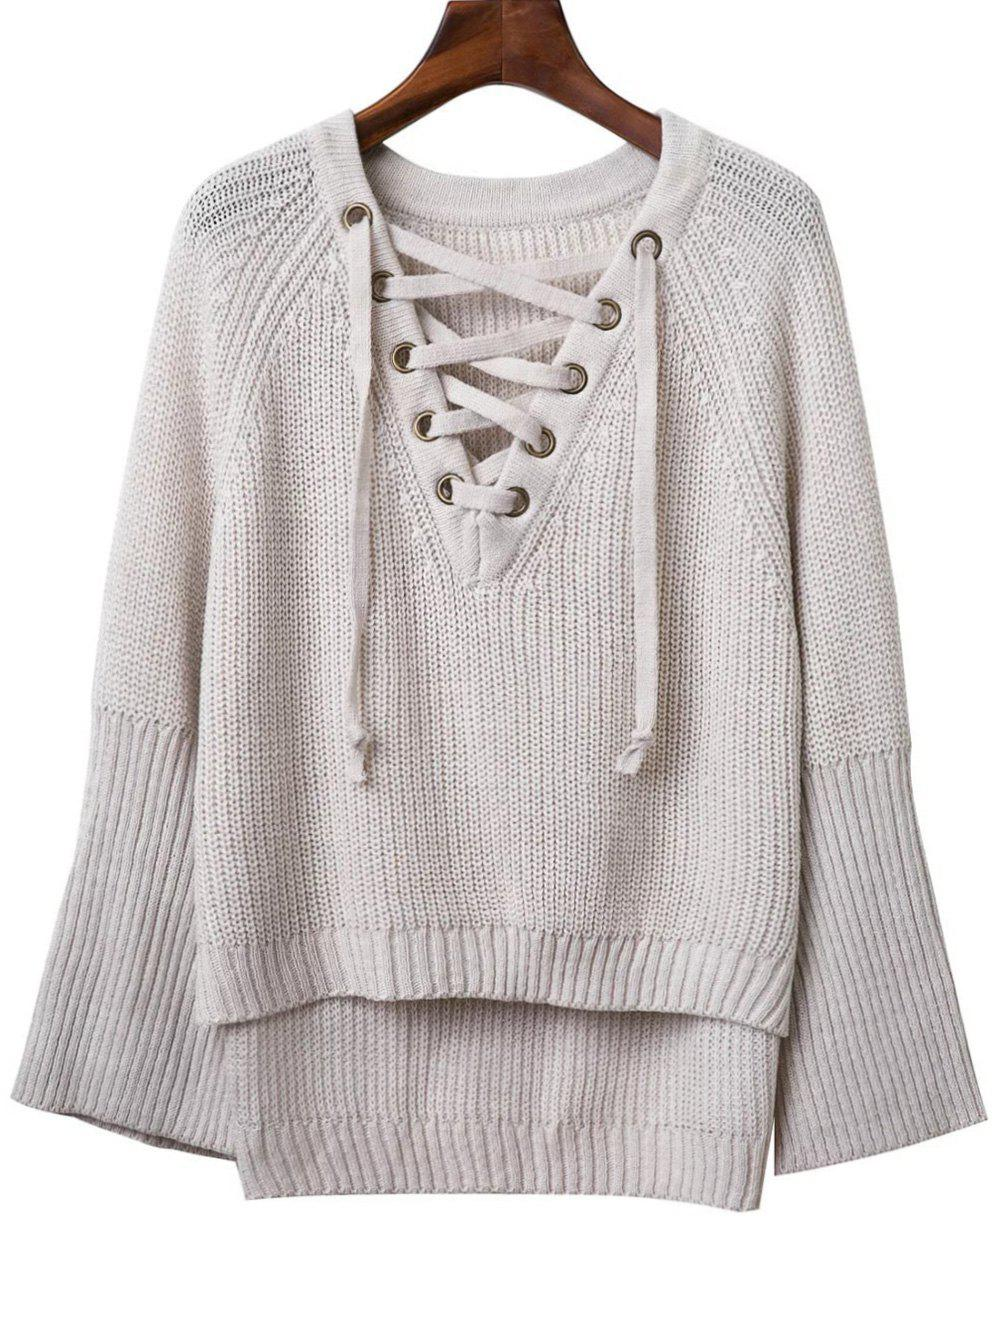 Store Fashion V Neck Long Sleeve Lace Up Sweater For Women